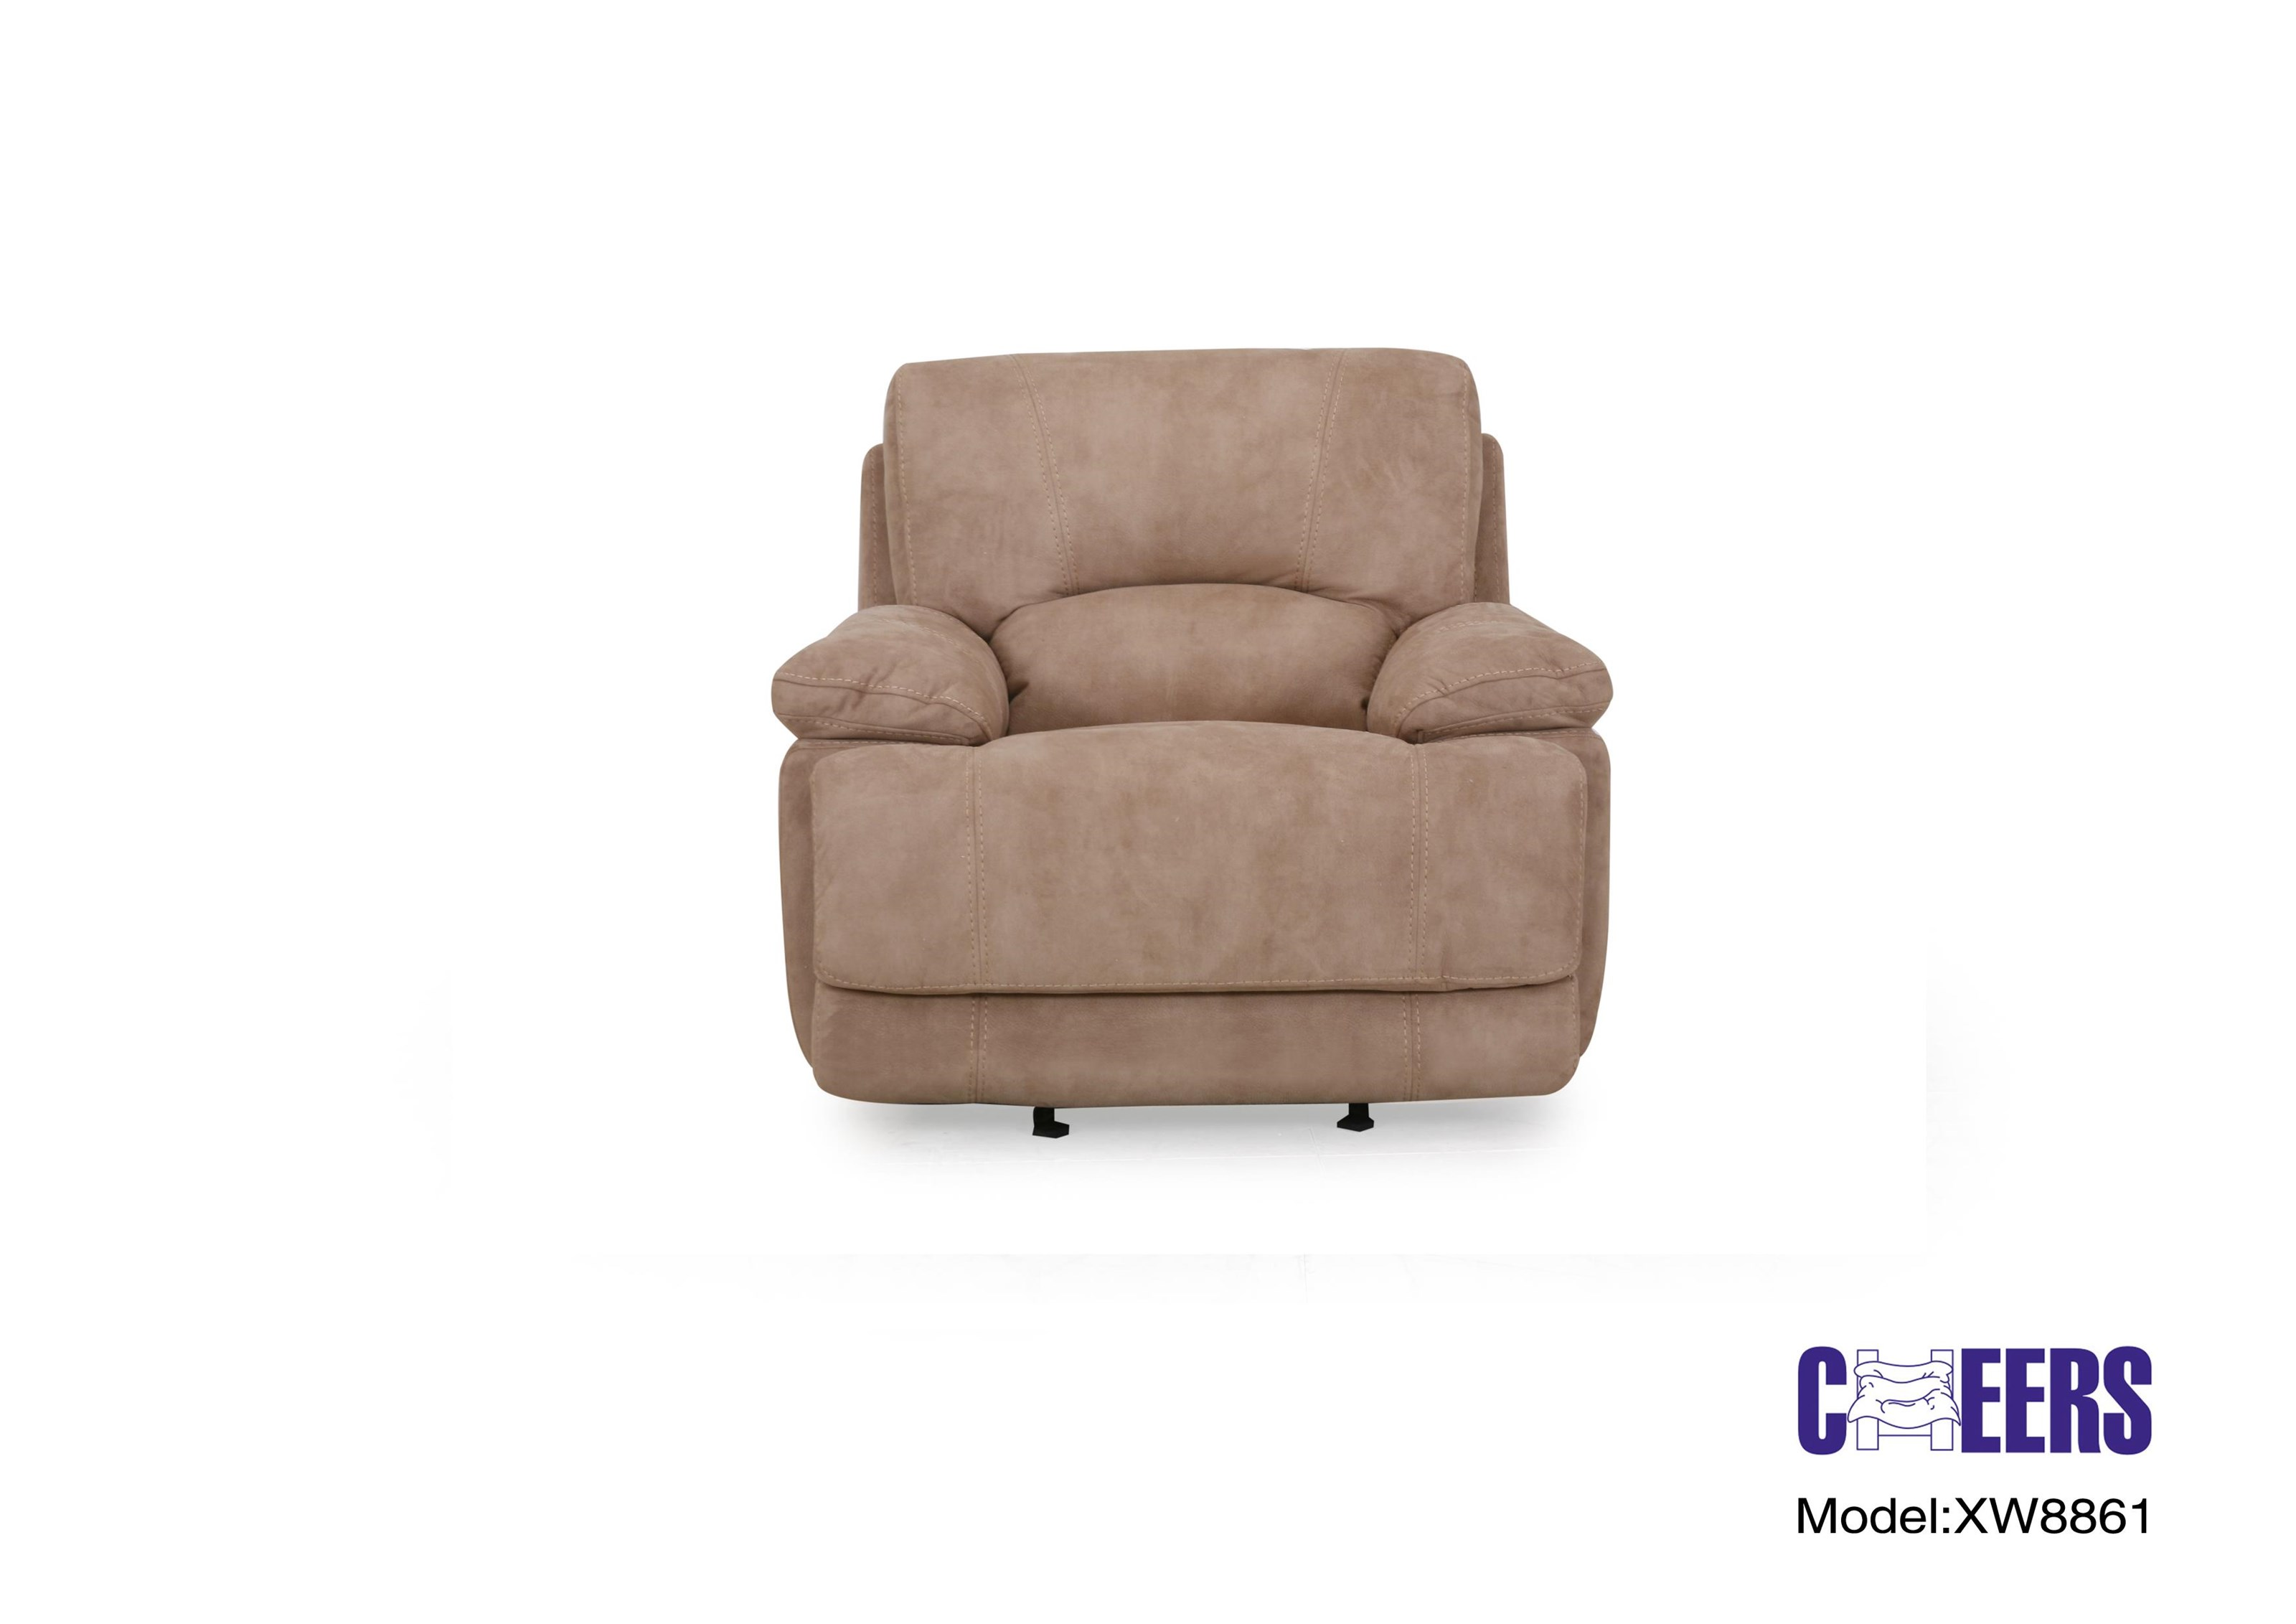 8861M MANUAL - MOTION Glider Recliner by Cheers Sofa at Westrich Furniture & Appliances